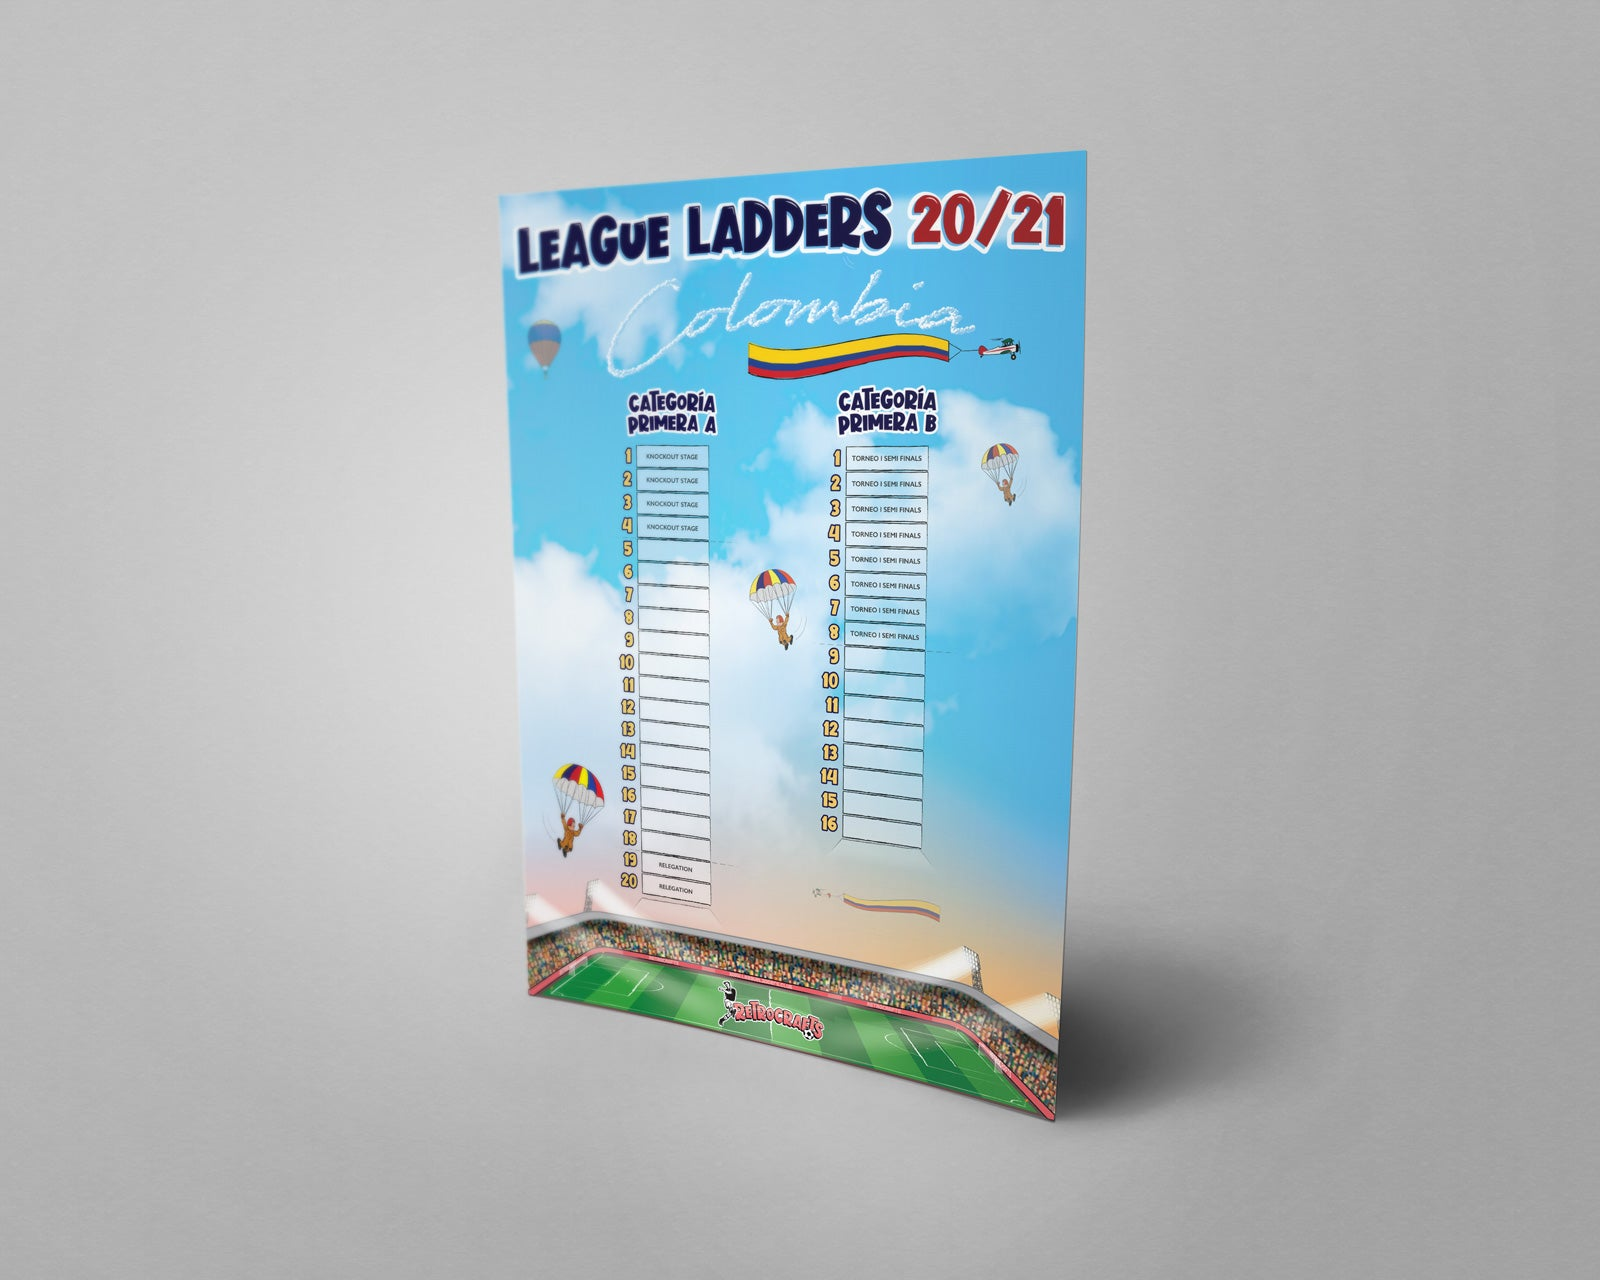 Colombia Football League Categoría Primera A and Categoría Primera B Tiers 1 & 2 2020 Season League Ladders